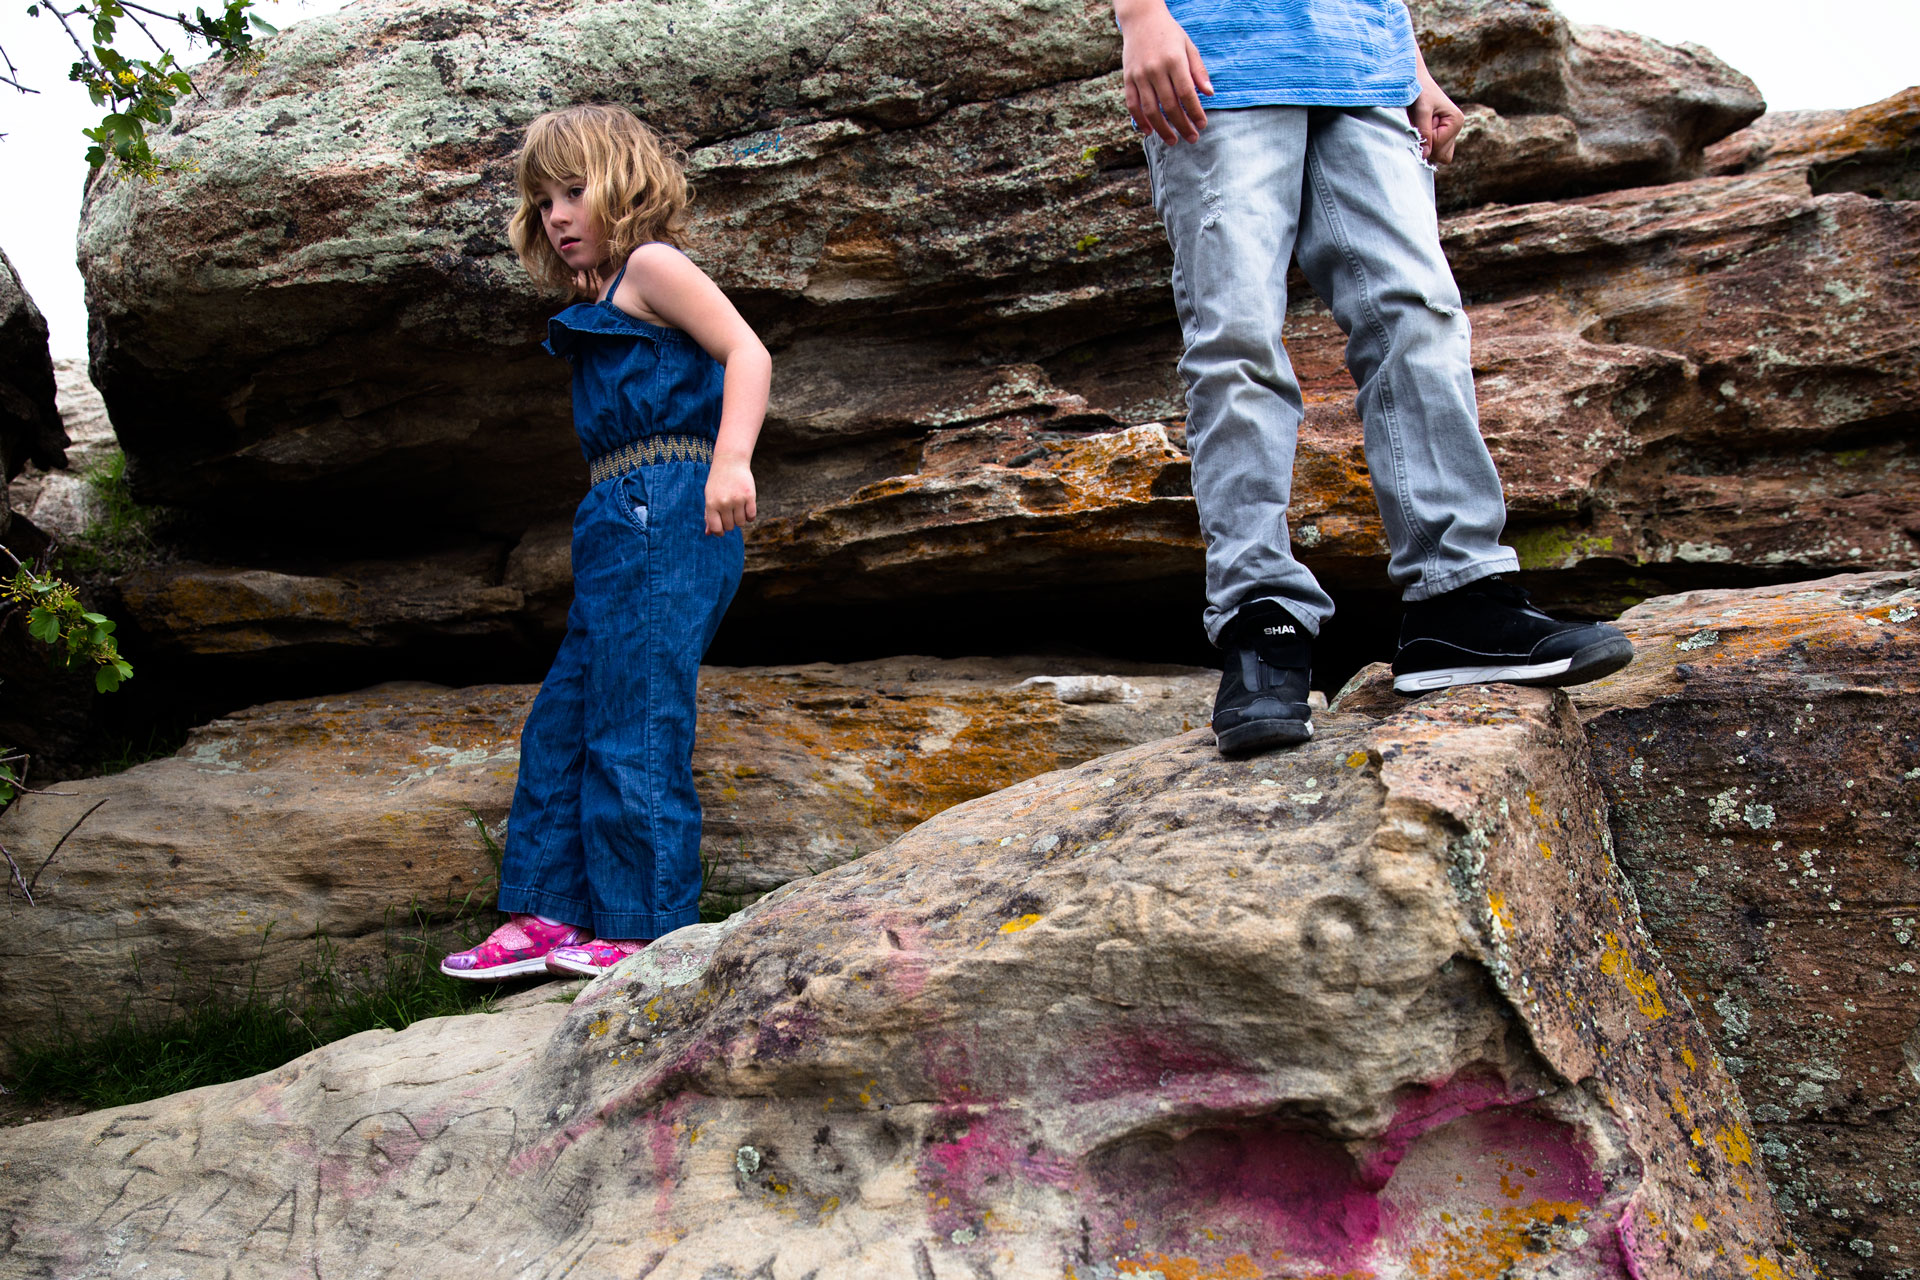 Two kids climbing all over the rocks by themselves